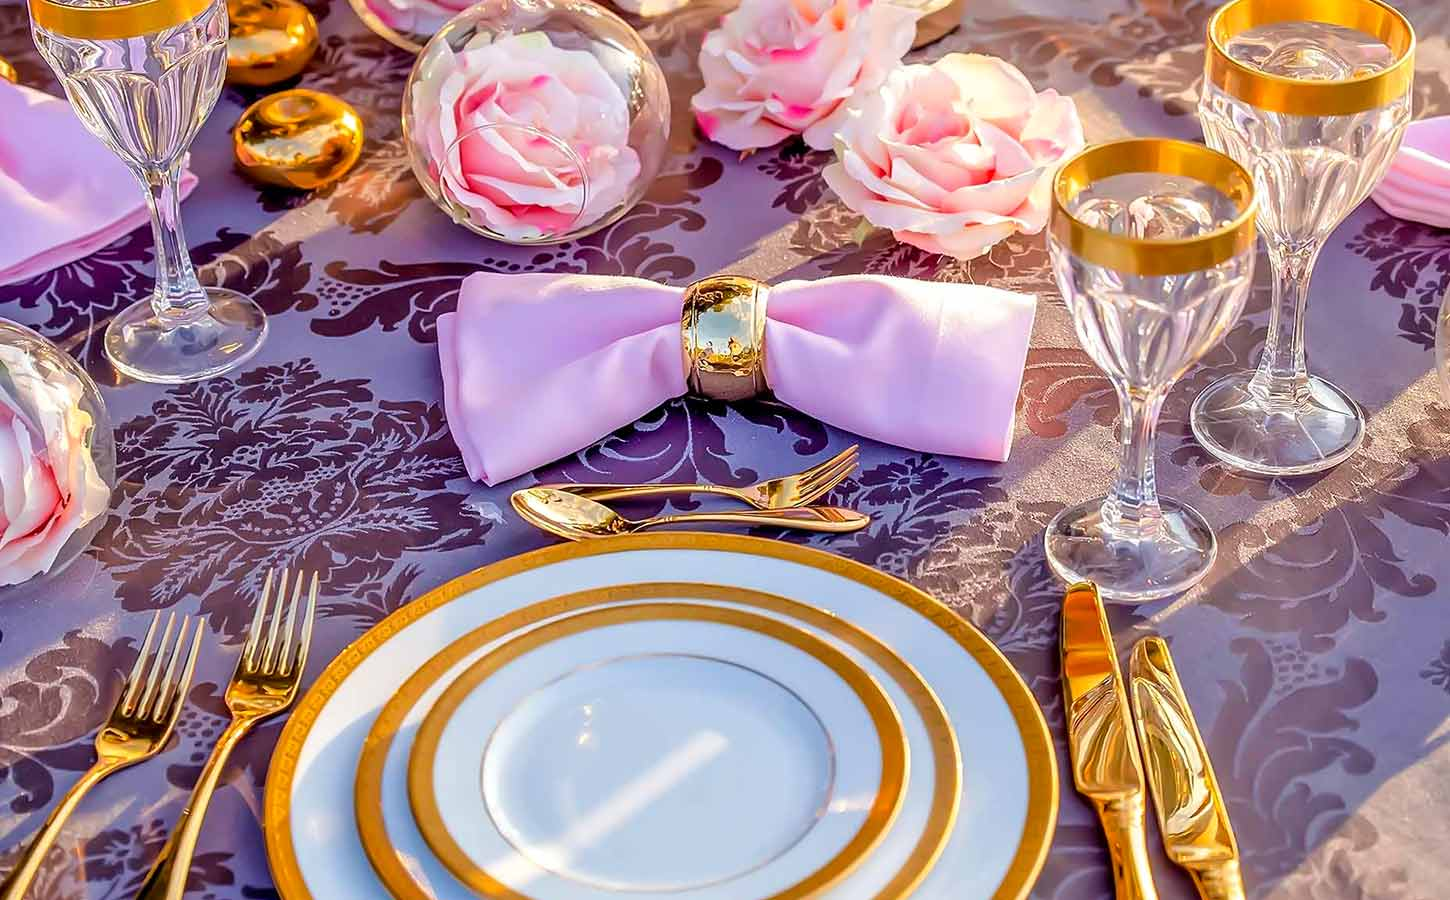 Luxurious-Gold-fairy-tale-wedding-Table-Setting-diamond-events-luxury-wedding-planner